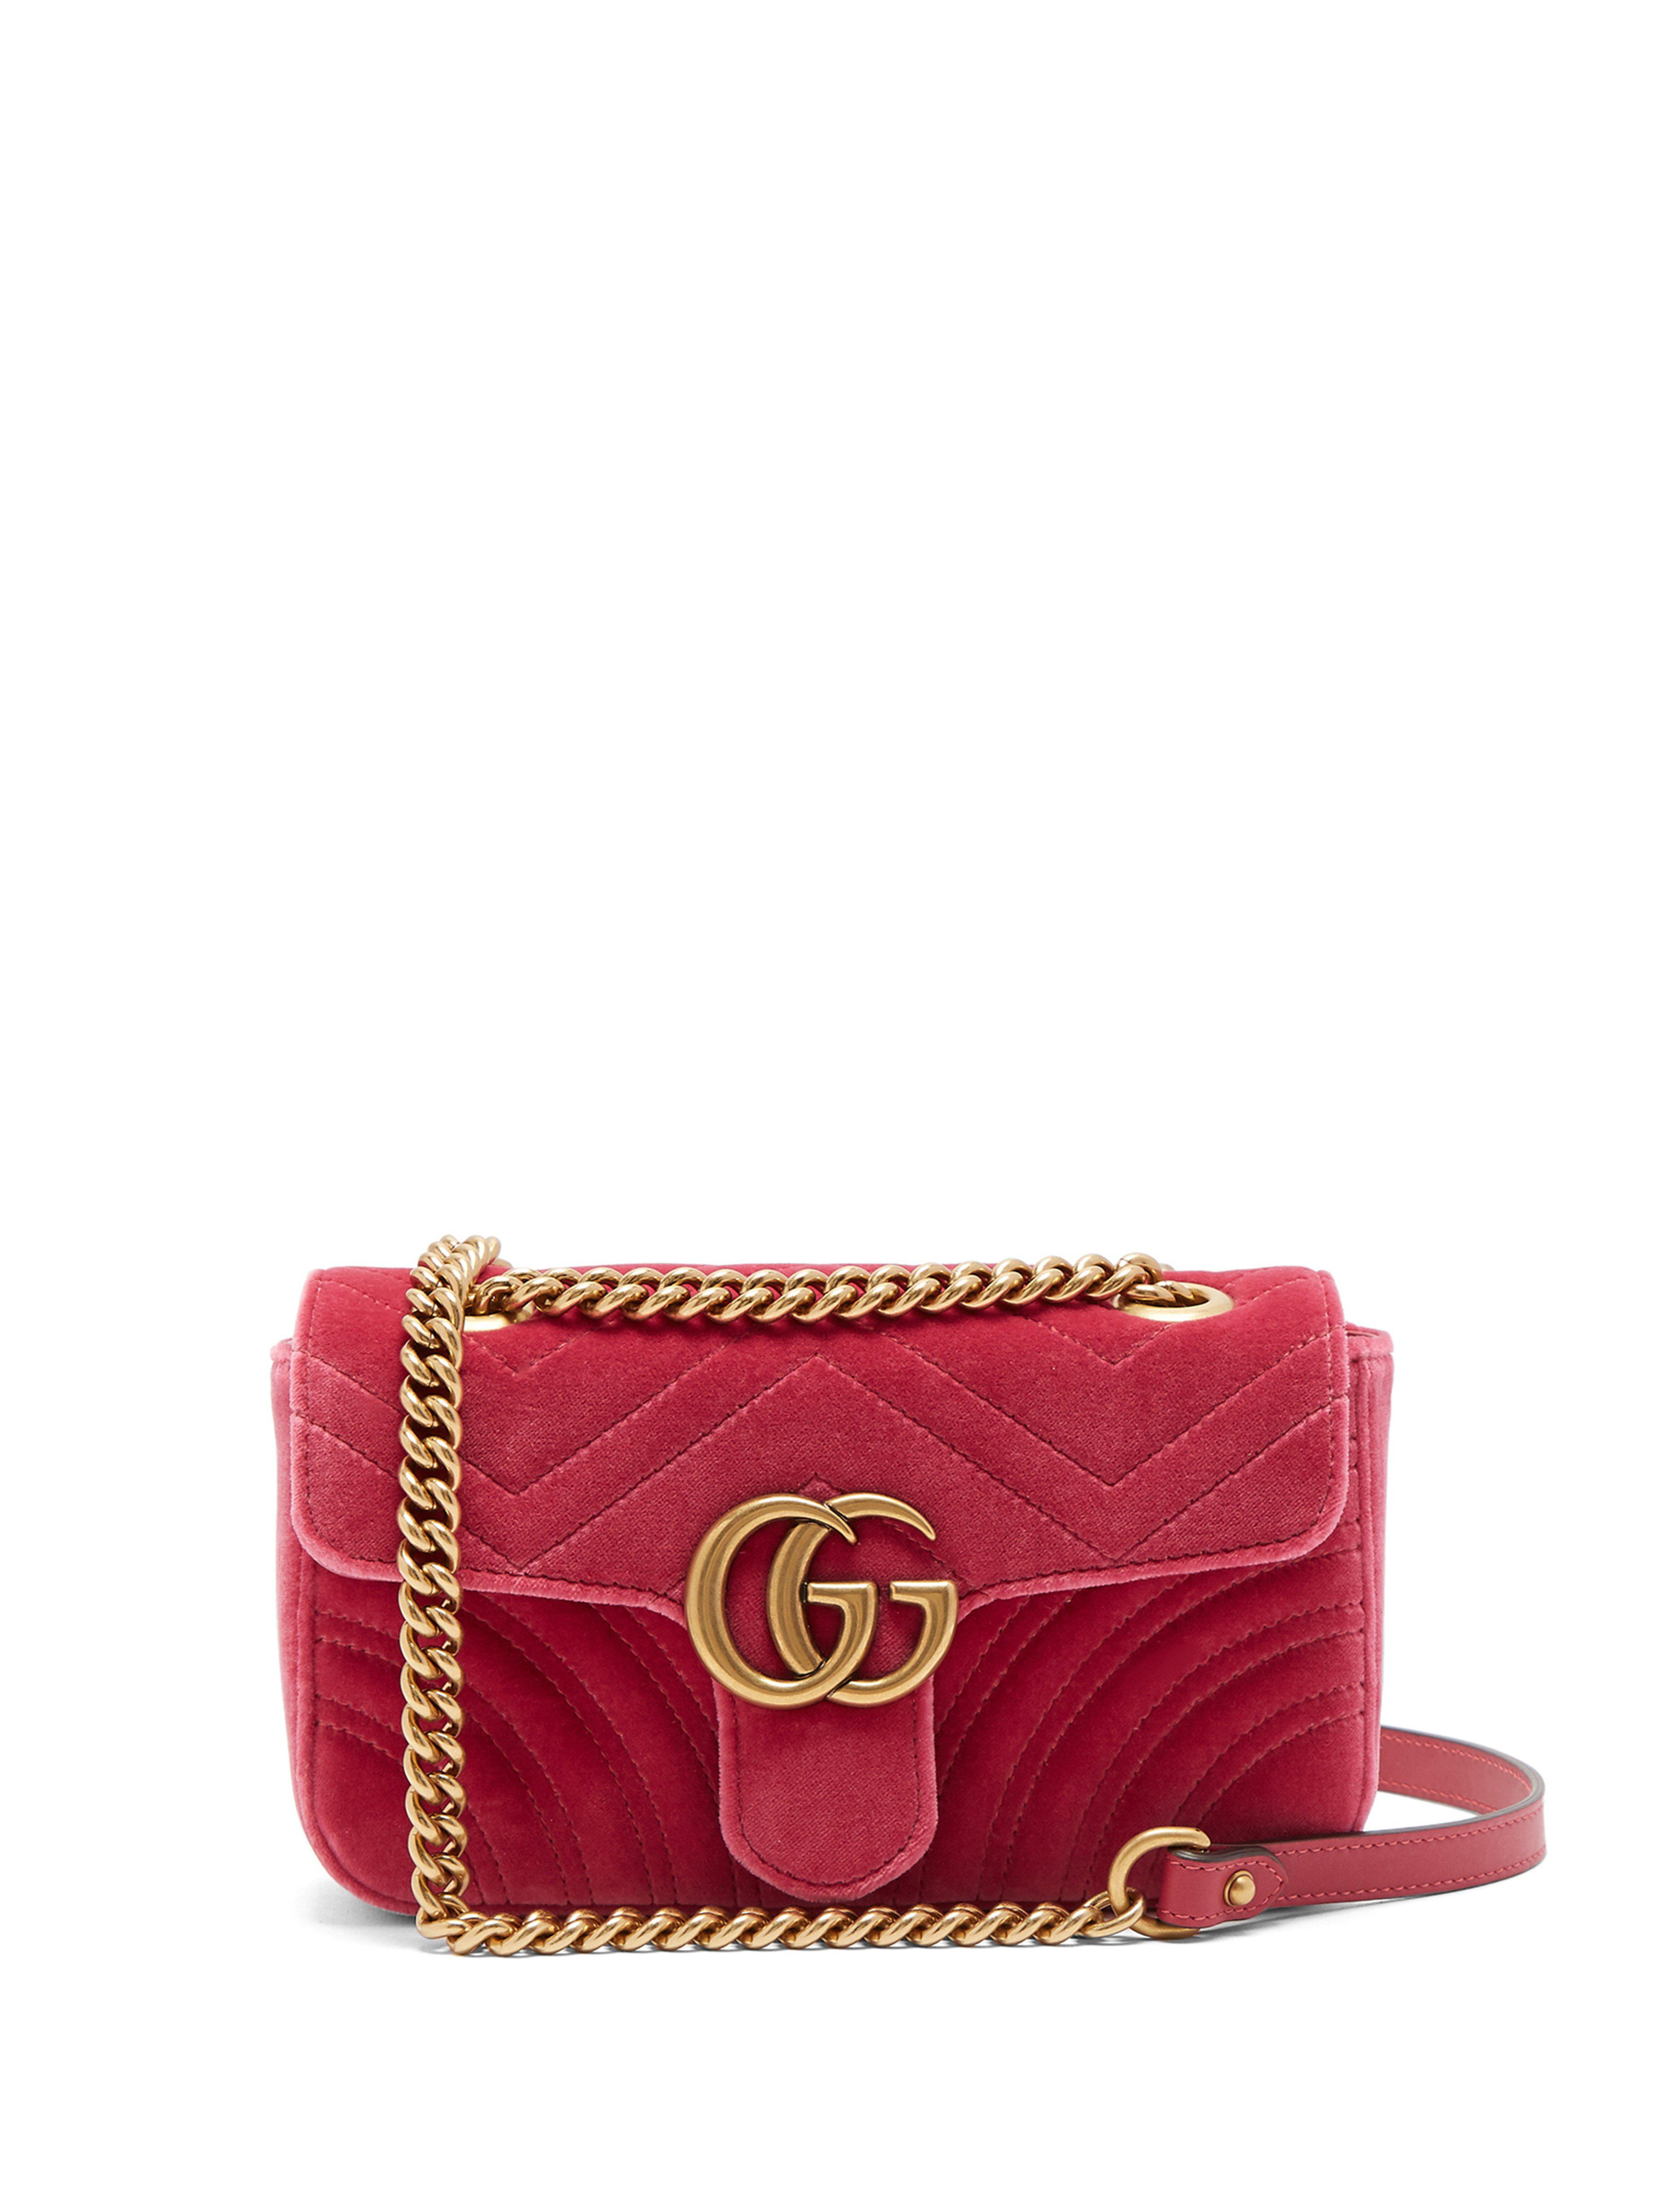 22f3237f28b Gucci GG Marmont Velvet Shoulder Bag in Pink - Save 13% - Lyst